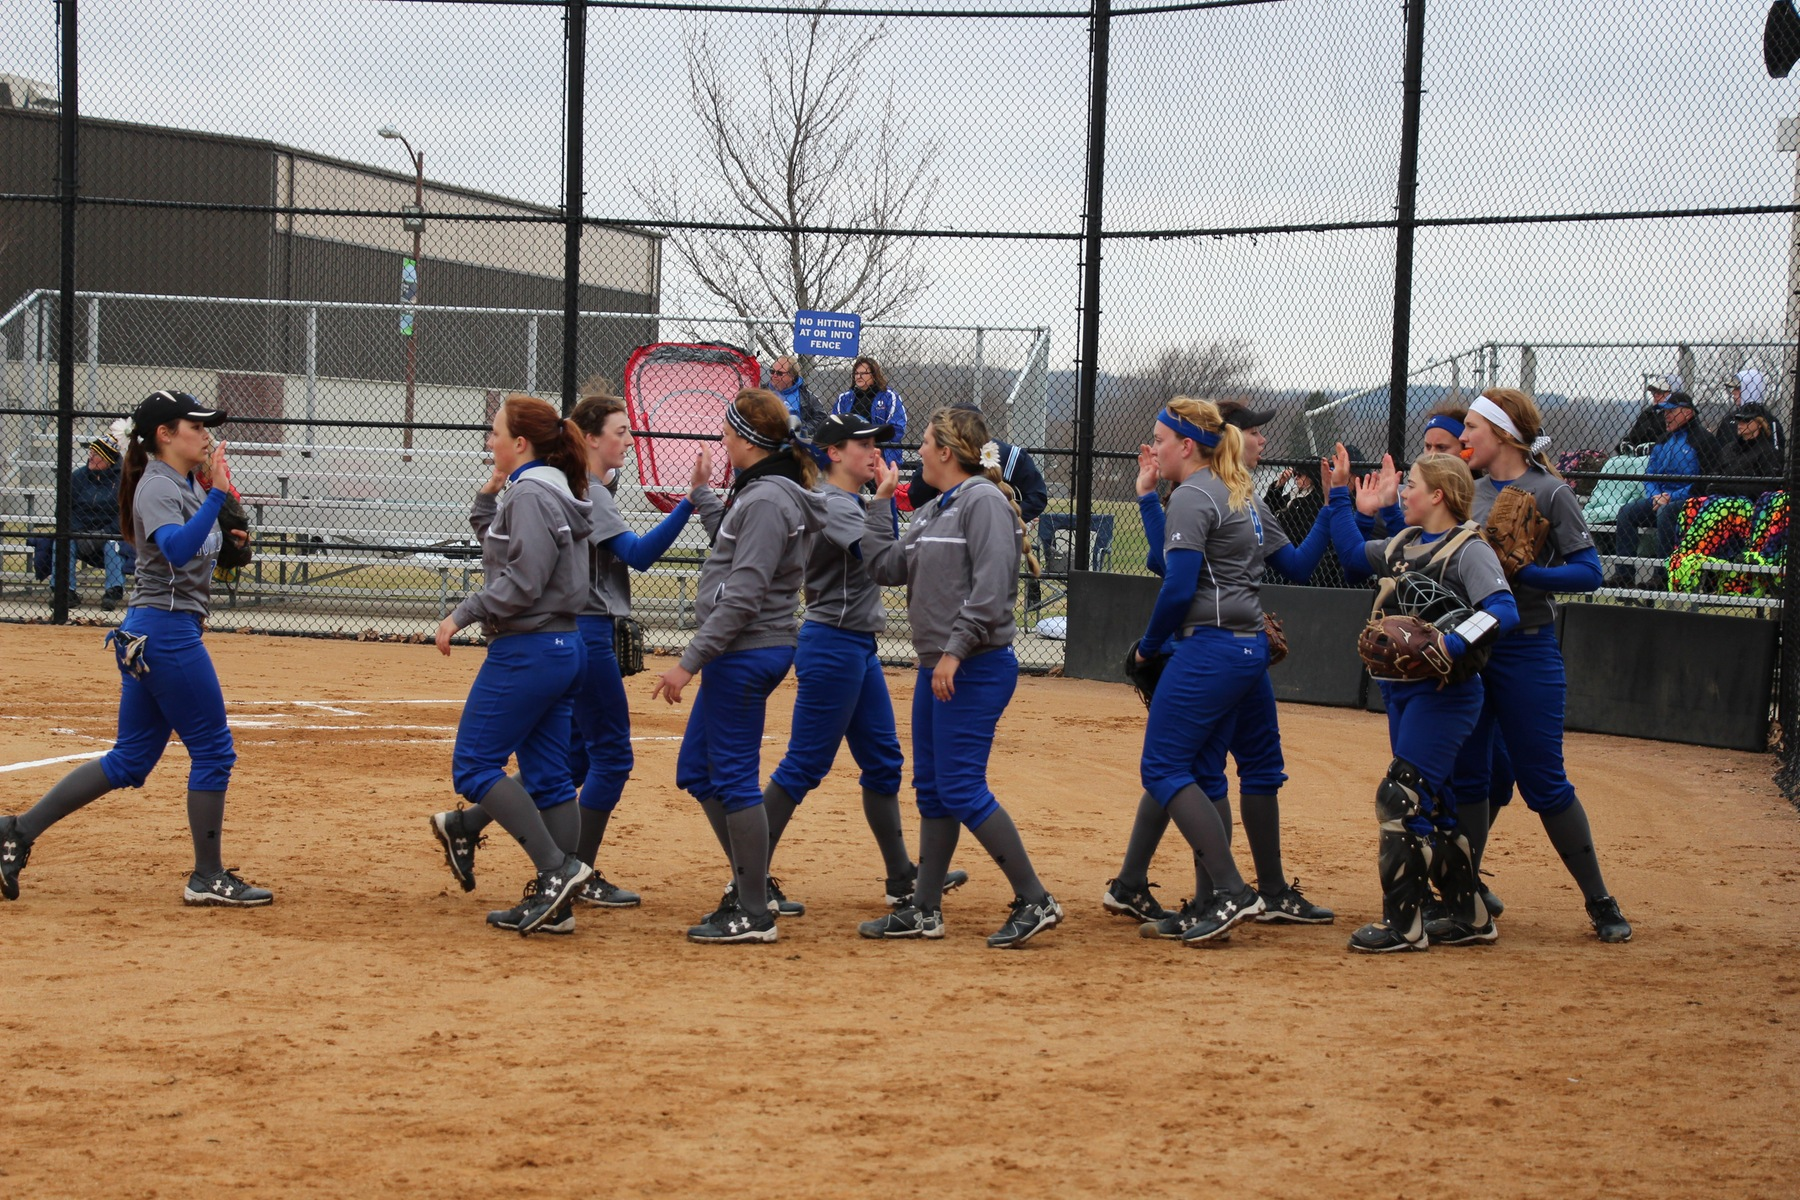 Iowa Lakes Softball to Host Youth Camp